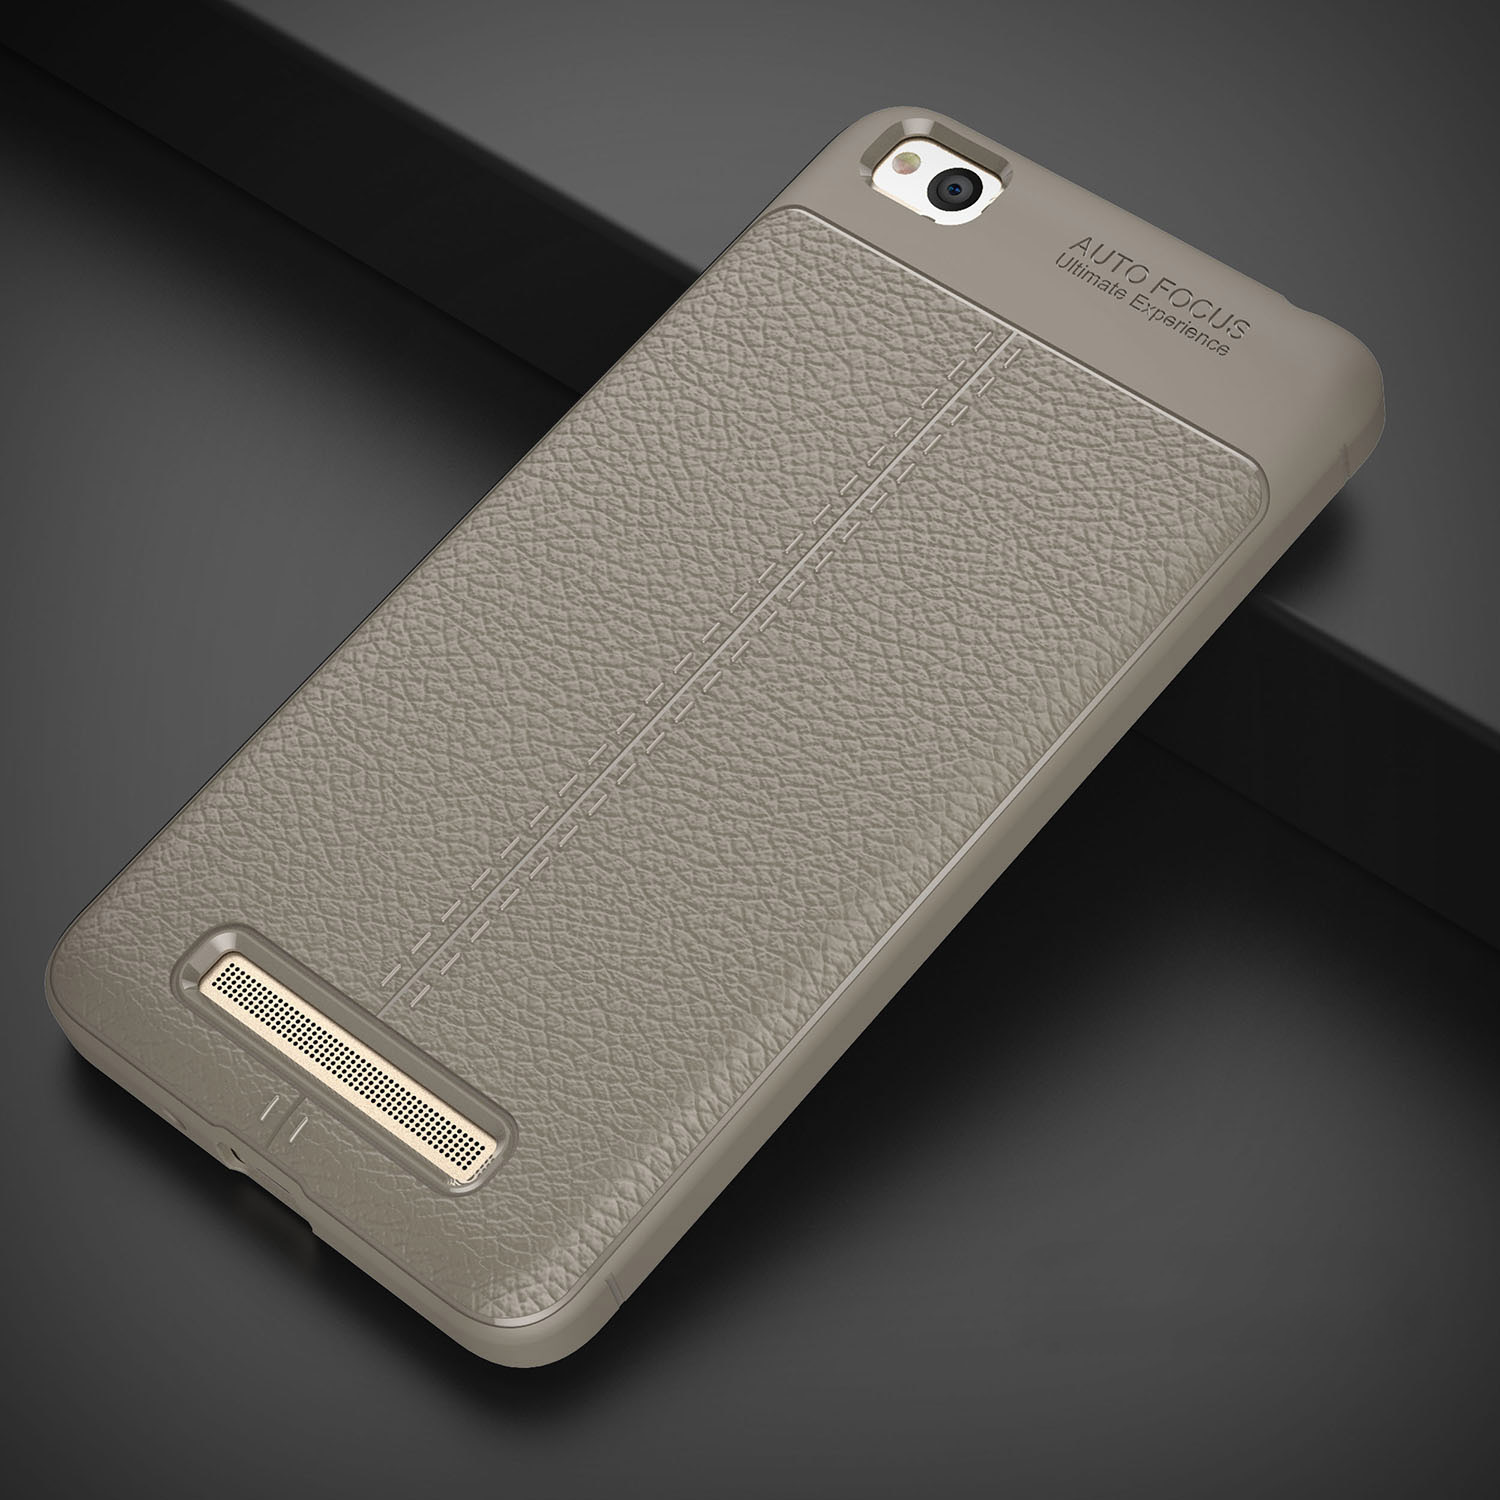 For Xiaomi Redmi 4a 4s 3s New Protective Leather Soft Case Bumper Softcase